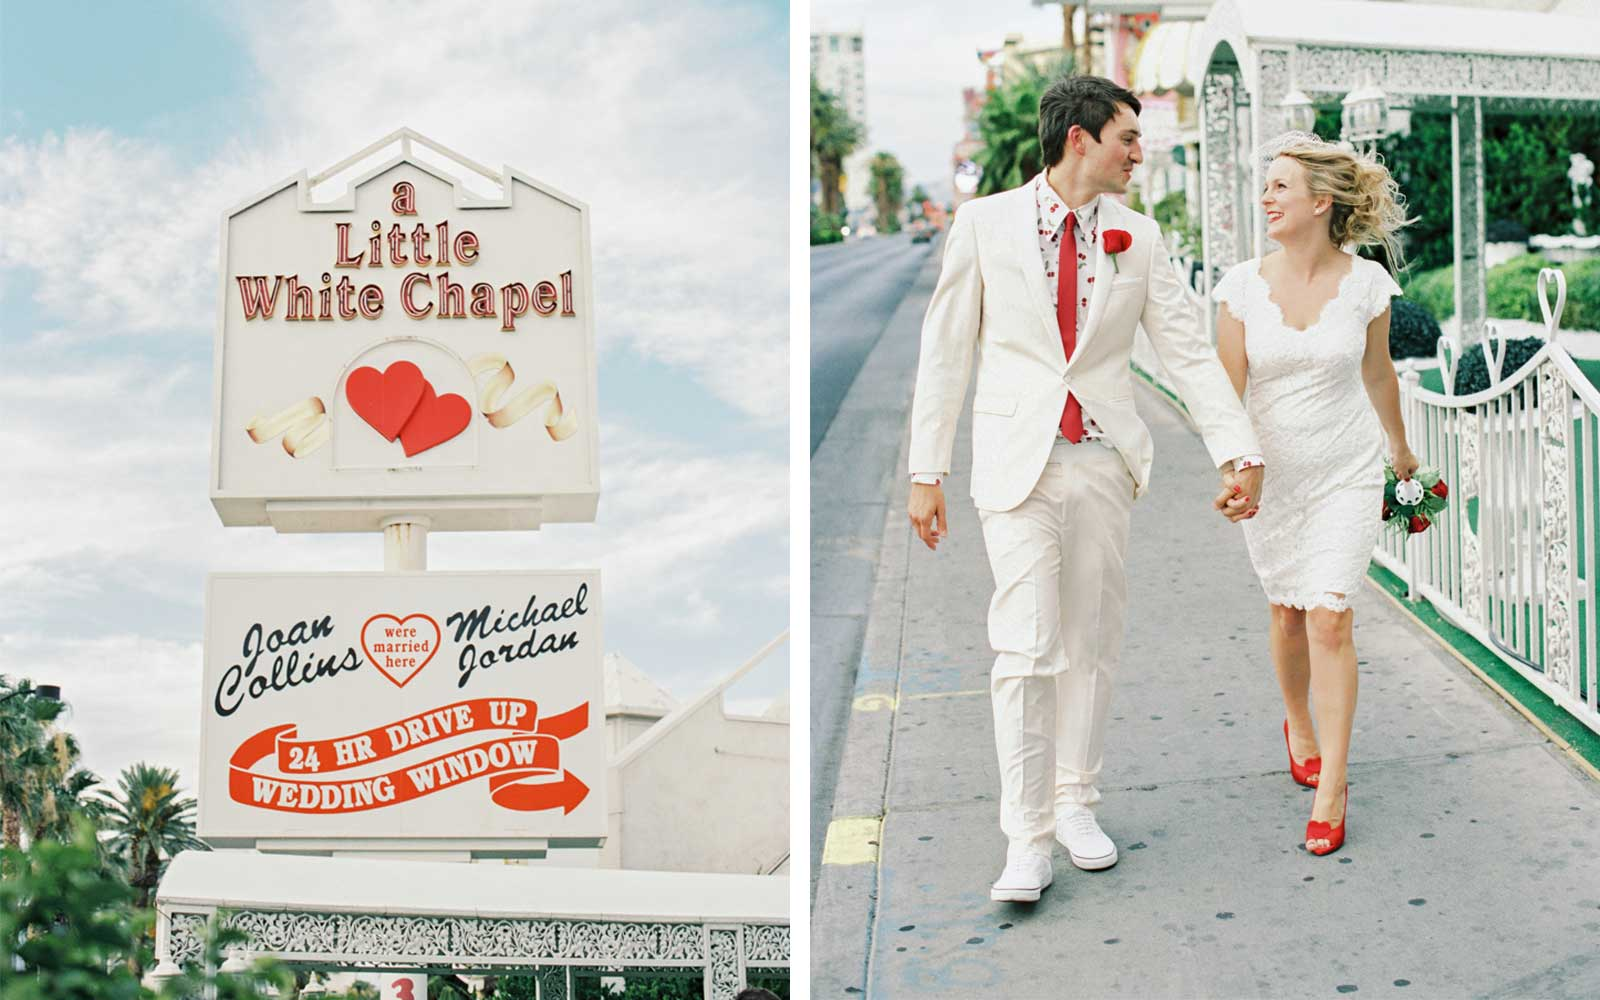 17 Photographs That Will Make You Want To Tie The Knot In